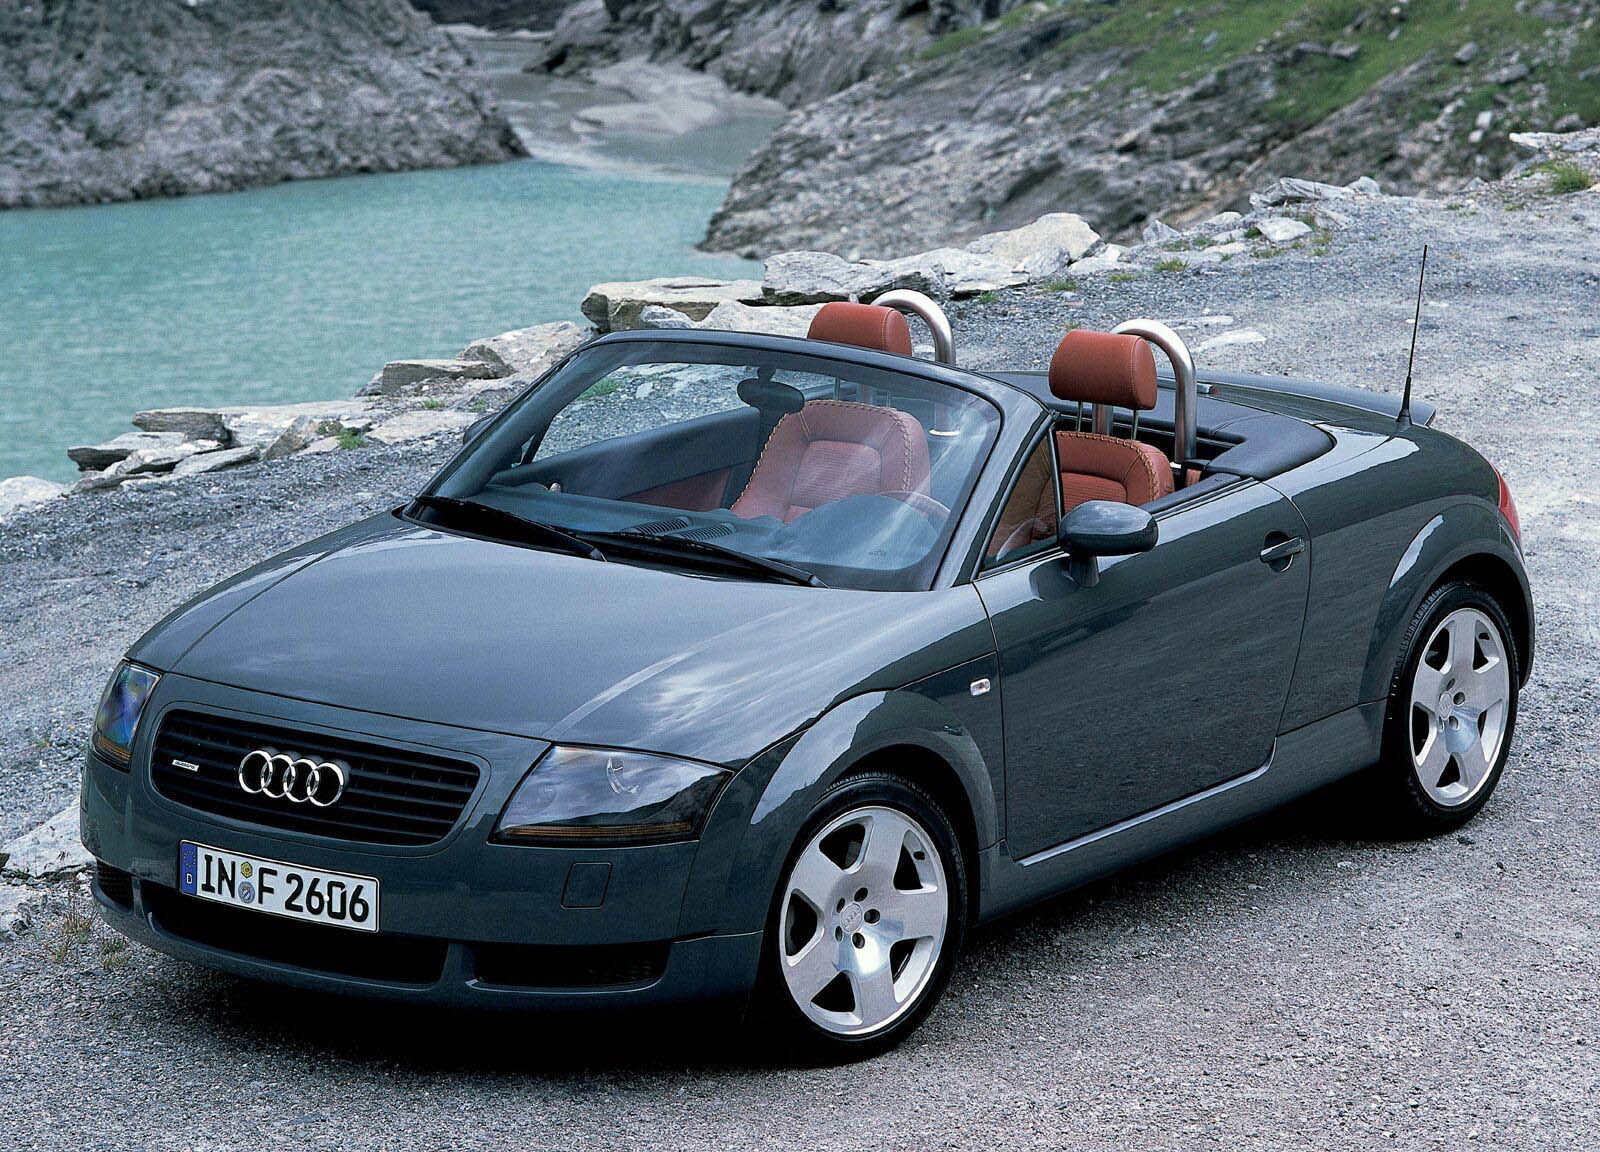 2003 audi tt roadster picture 2049 car review top speed. Black Bedroom Furniture Sets. Home Design Ideas